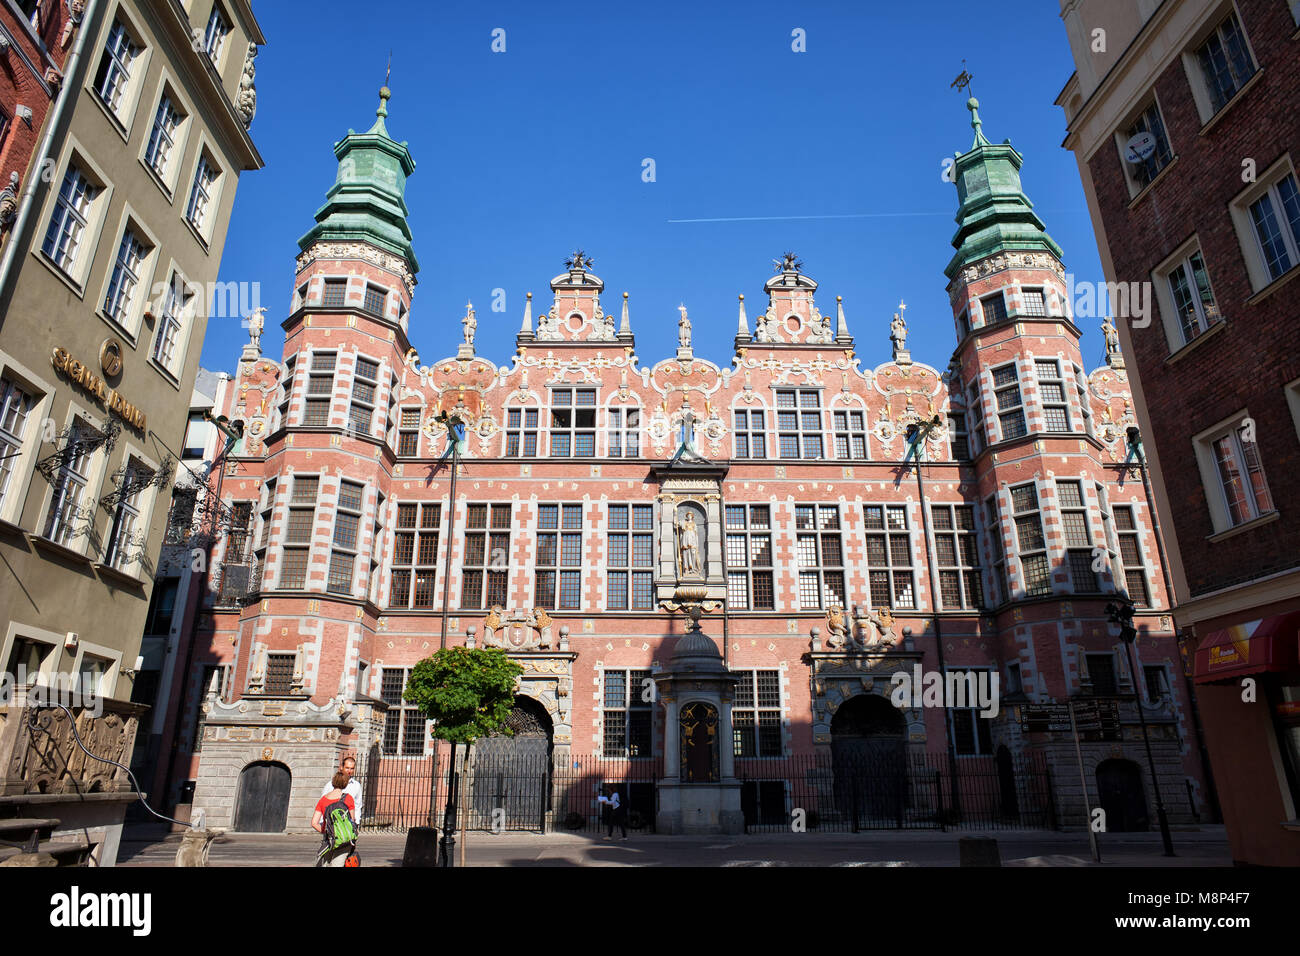 The Great Armoury - Grand Armoury (Wielka Zbrojownia) in city of Gdansk, Poland, Europe, Netherlandic Mannerism - Stock Image